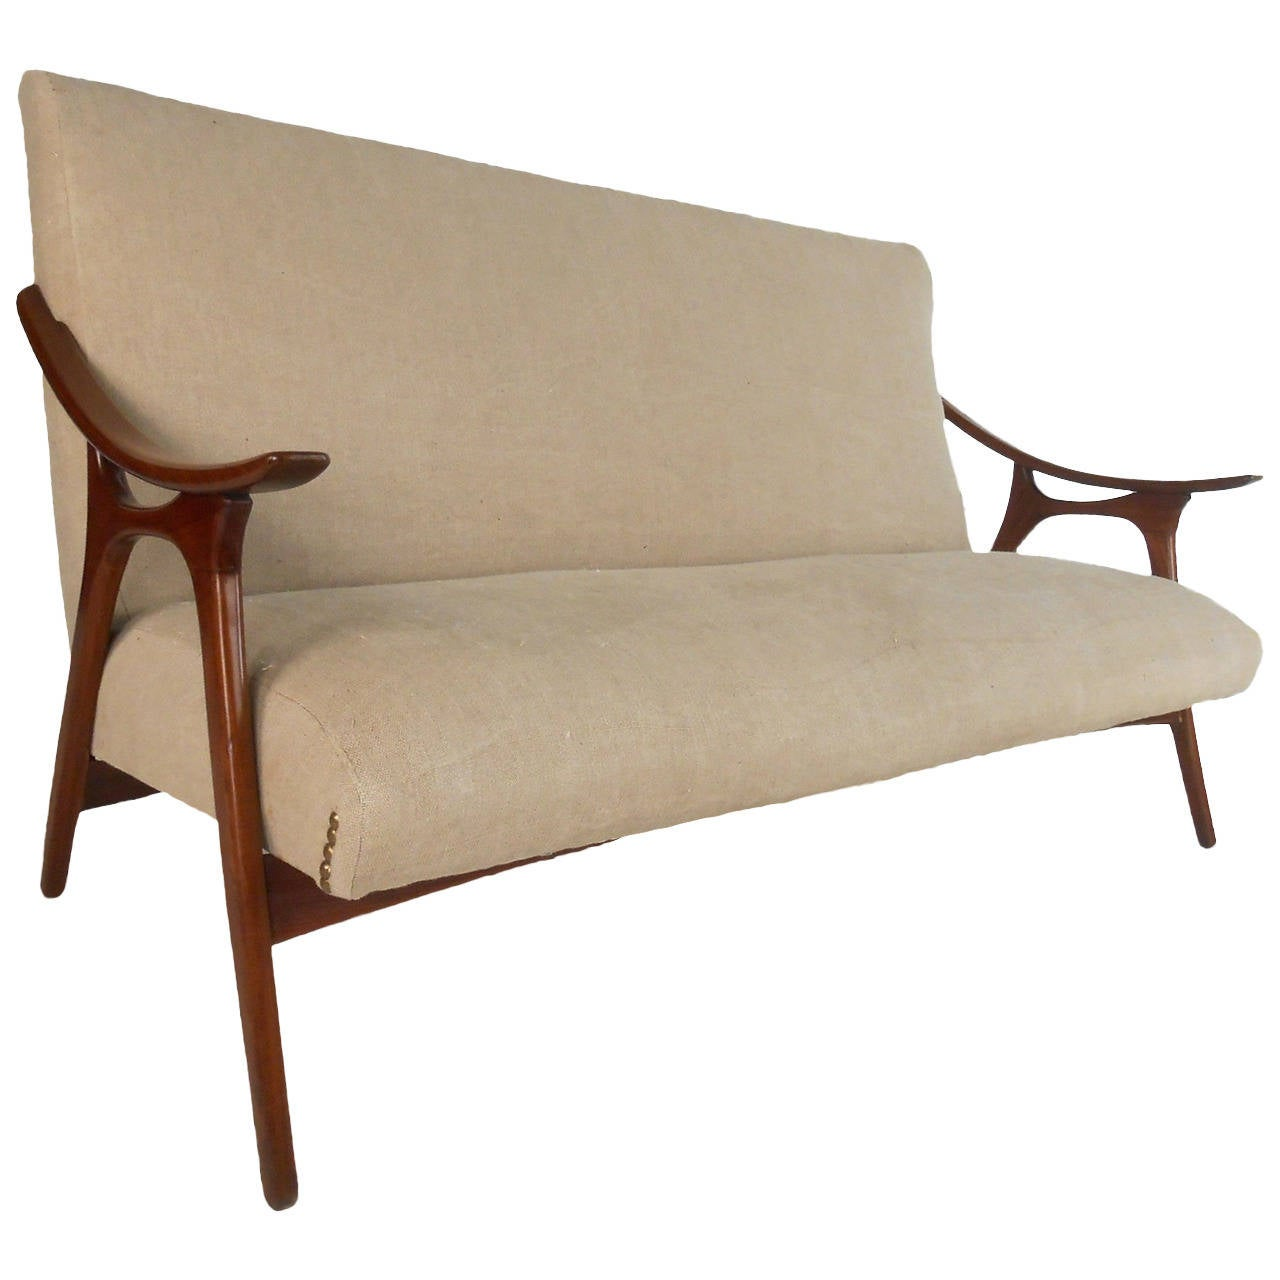 Mid century modern peter hvidt style sofa for sale at 1stdibs for Mid century modern sofa for sale